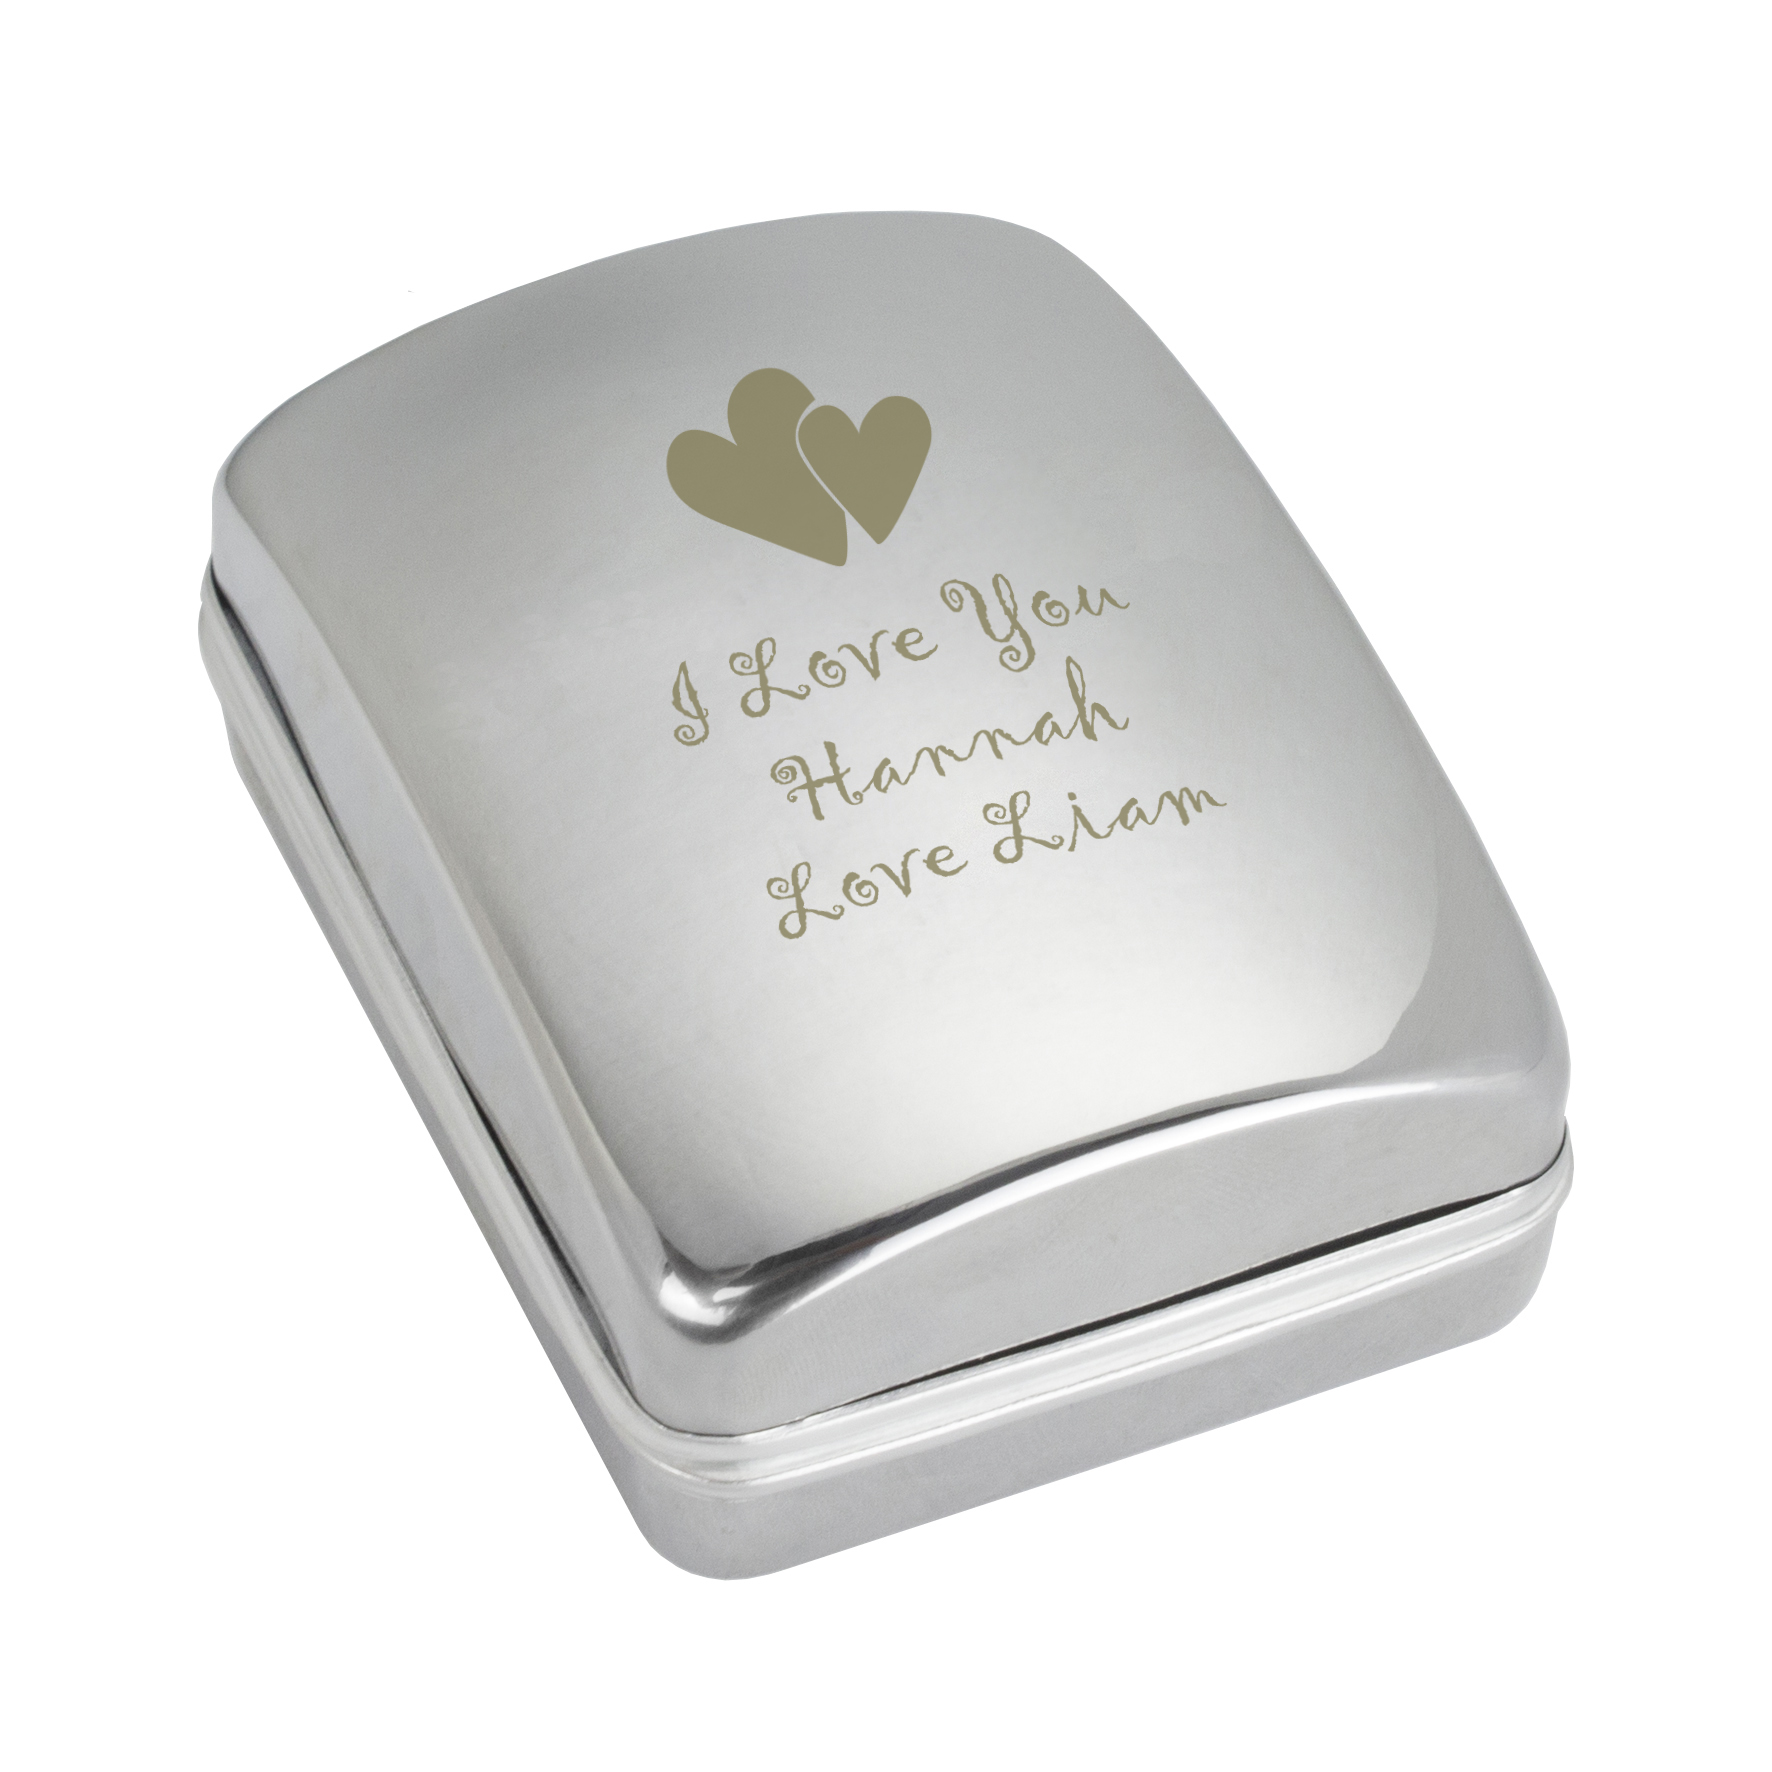 Engraved Heart Motif Necklace Box with Heart Necklace